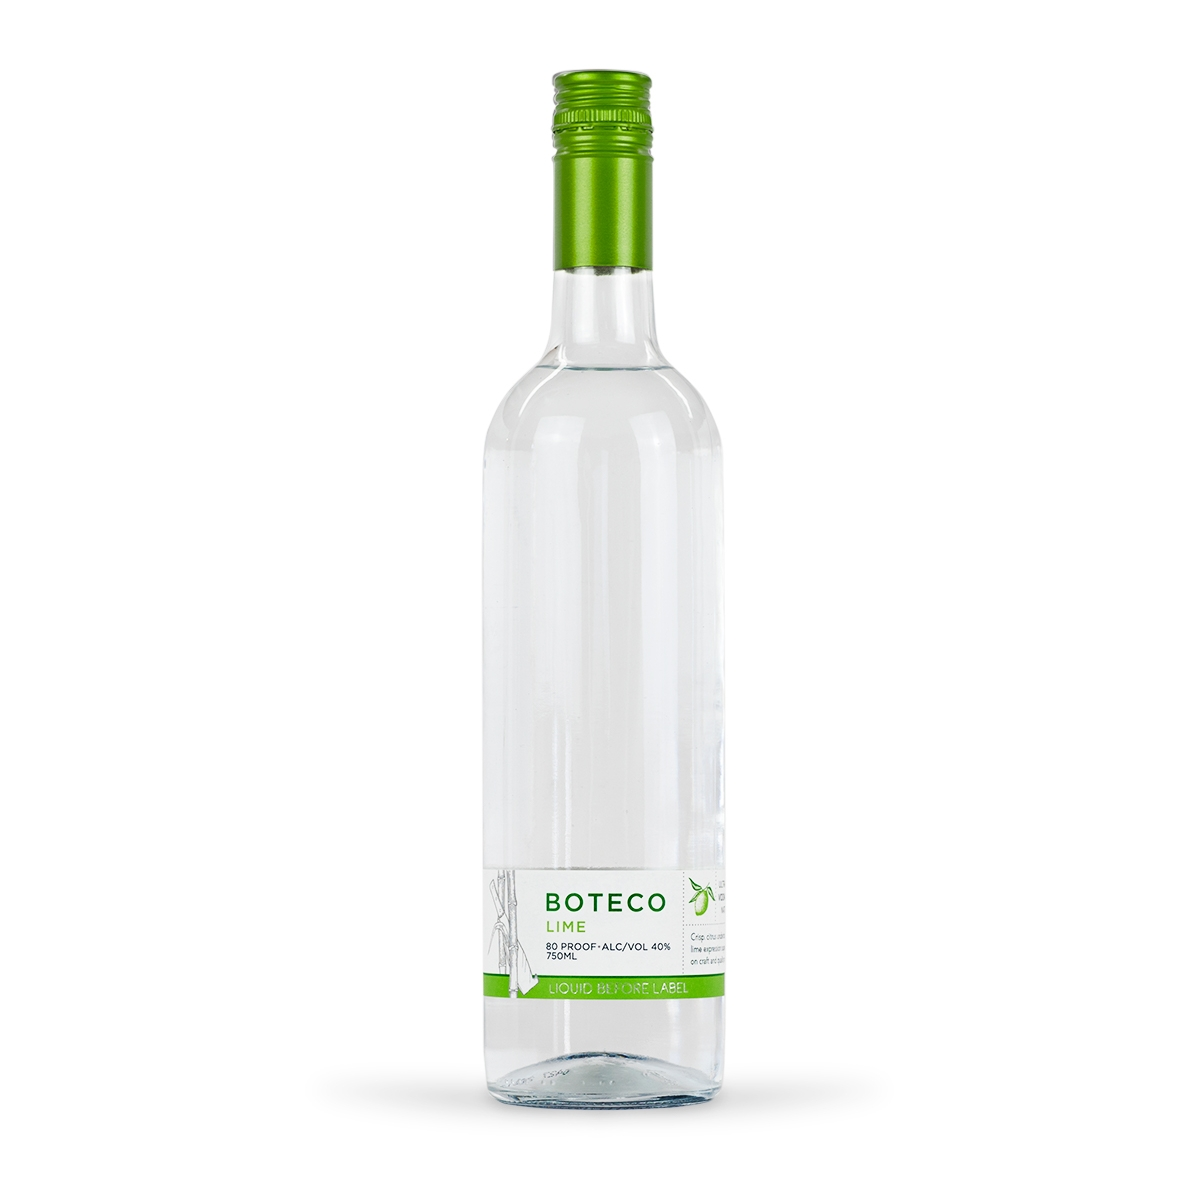 BOTECO Lime - Lime Brazilian Cane Vodka - All Natural Gluten Free Ultra Premium.jpg